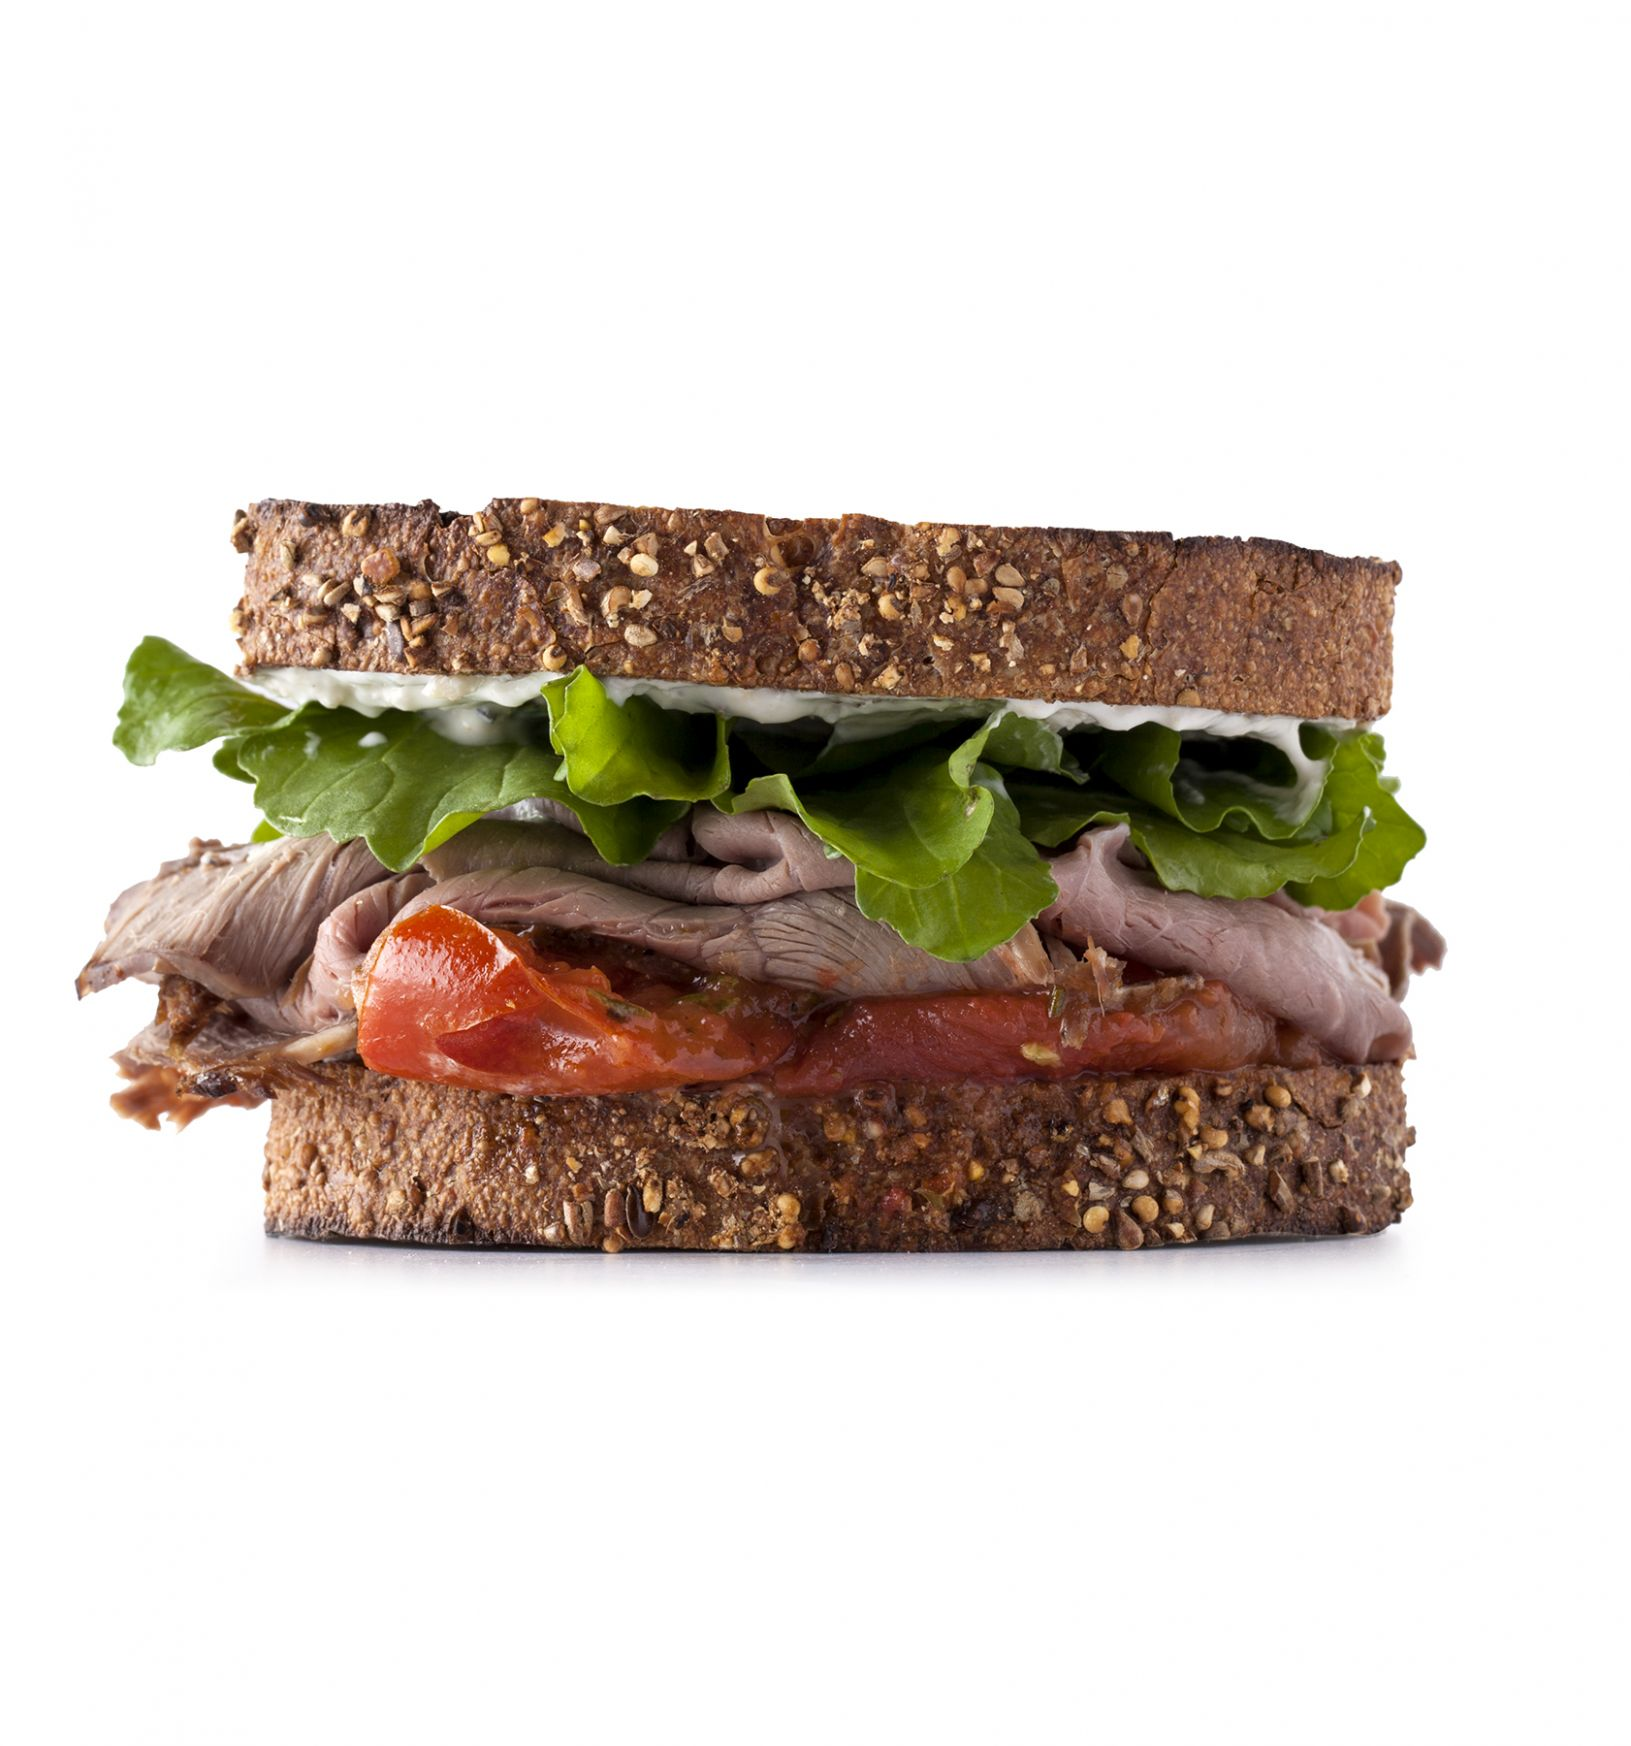 Roast Beef With Roasted Tomatoes Sandwich - Sandwich Recipes Roast Beef